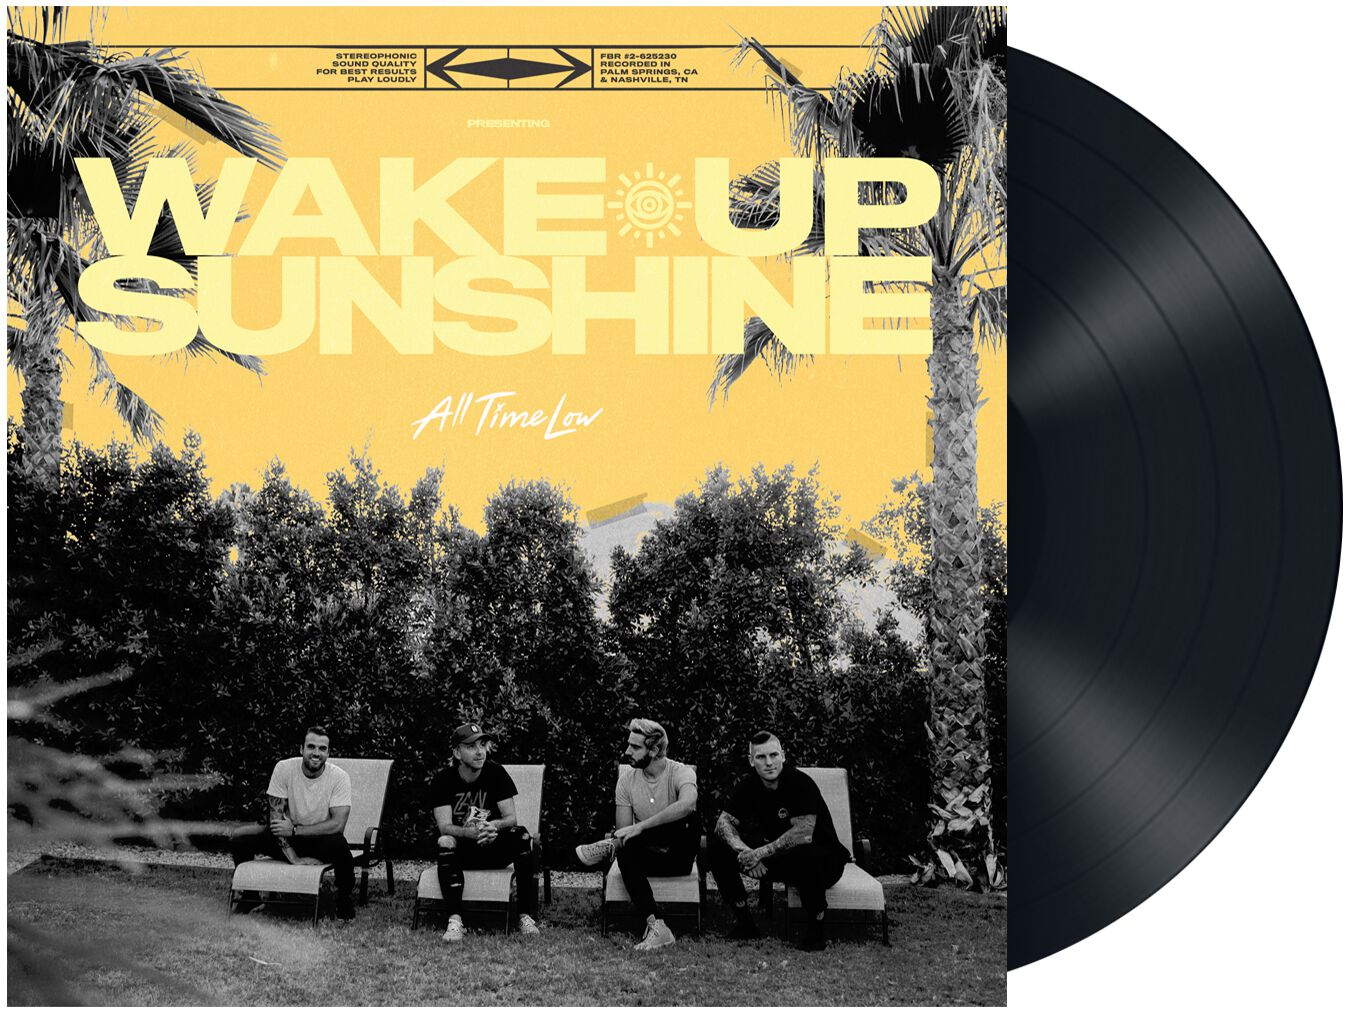 All Time Low  Wake up, sunshine  LP  Standard